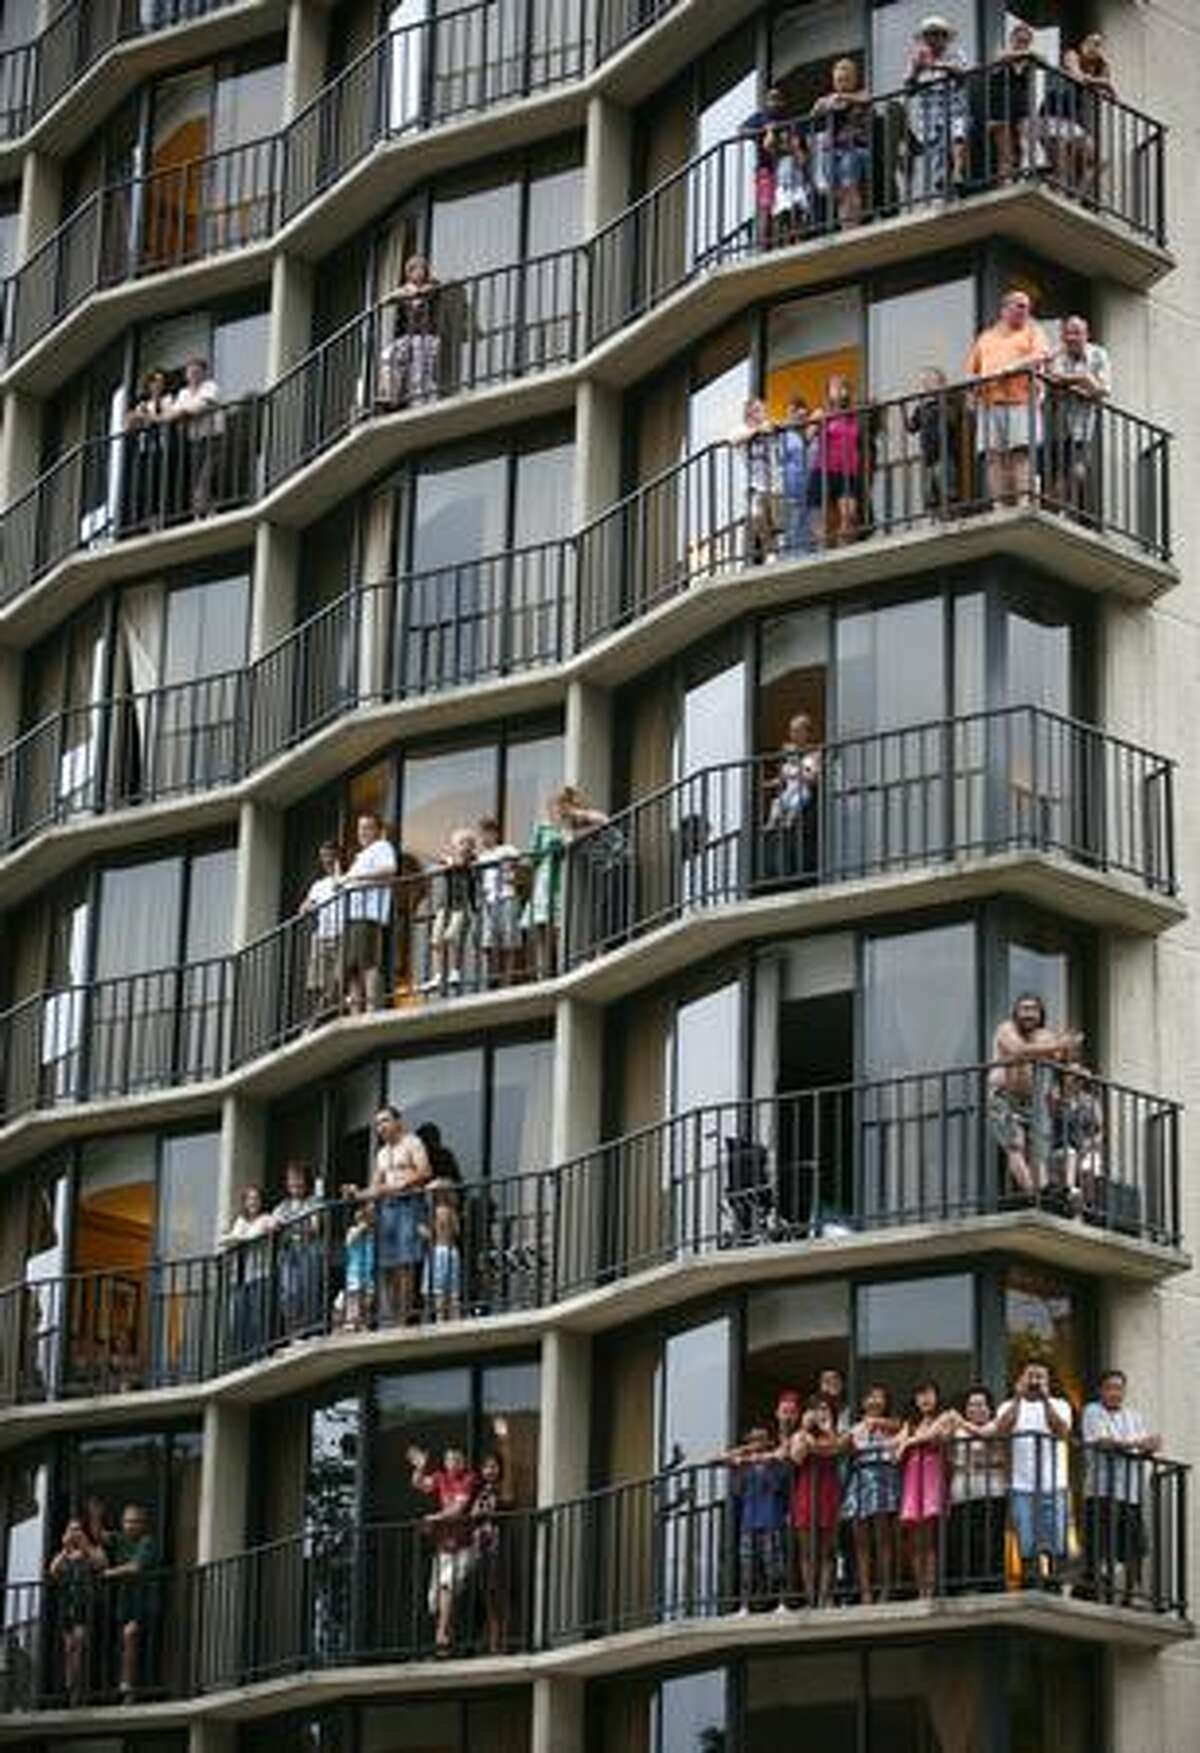 People watch the parade from the Warwick Hotel during the Seafair Torchlight parade on Saturday July 25, 2009 along 4th Avenue in Seattle.